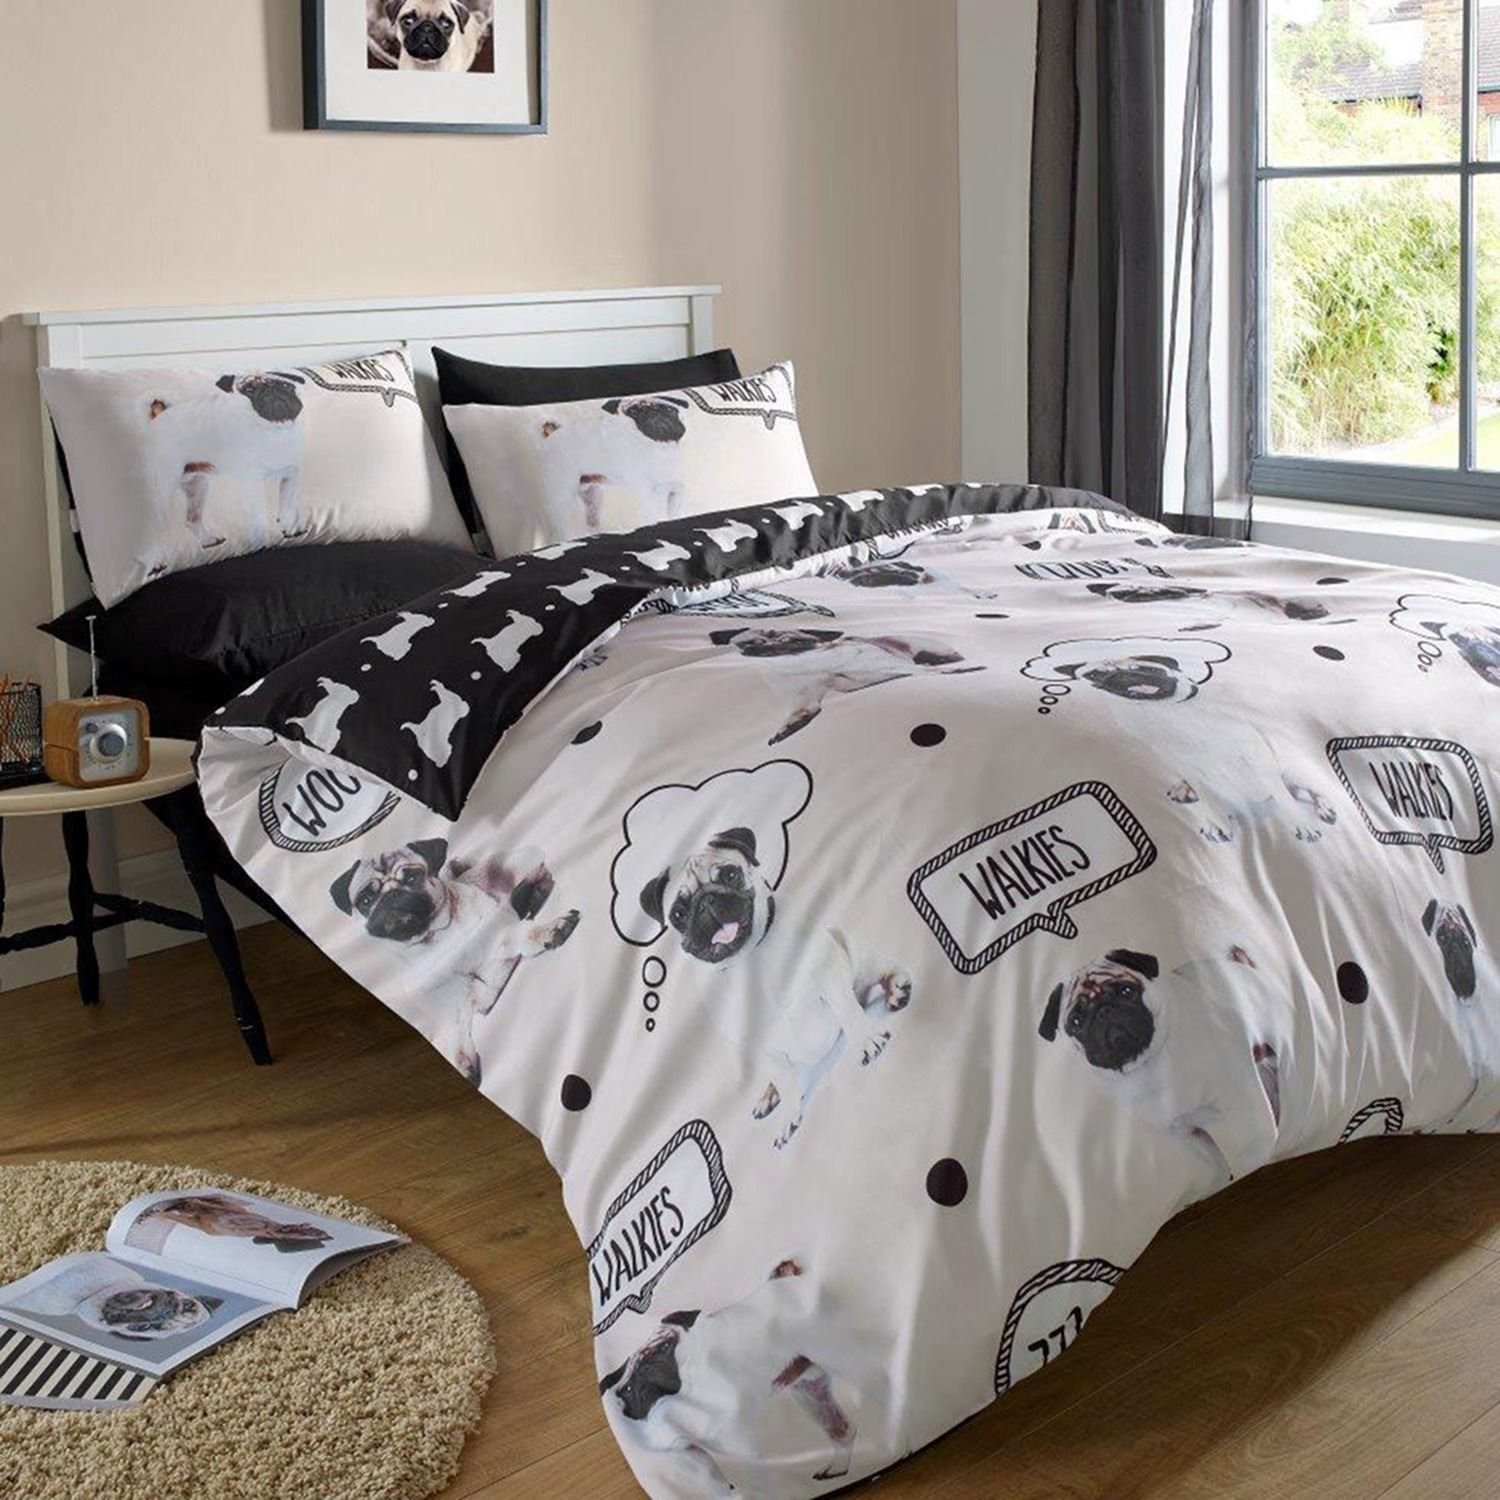 Pug Walkies Double Duvet Cover and Pillowcase Set Pin Mill Textiles Ltd